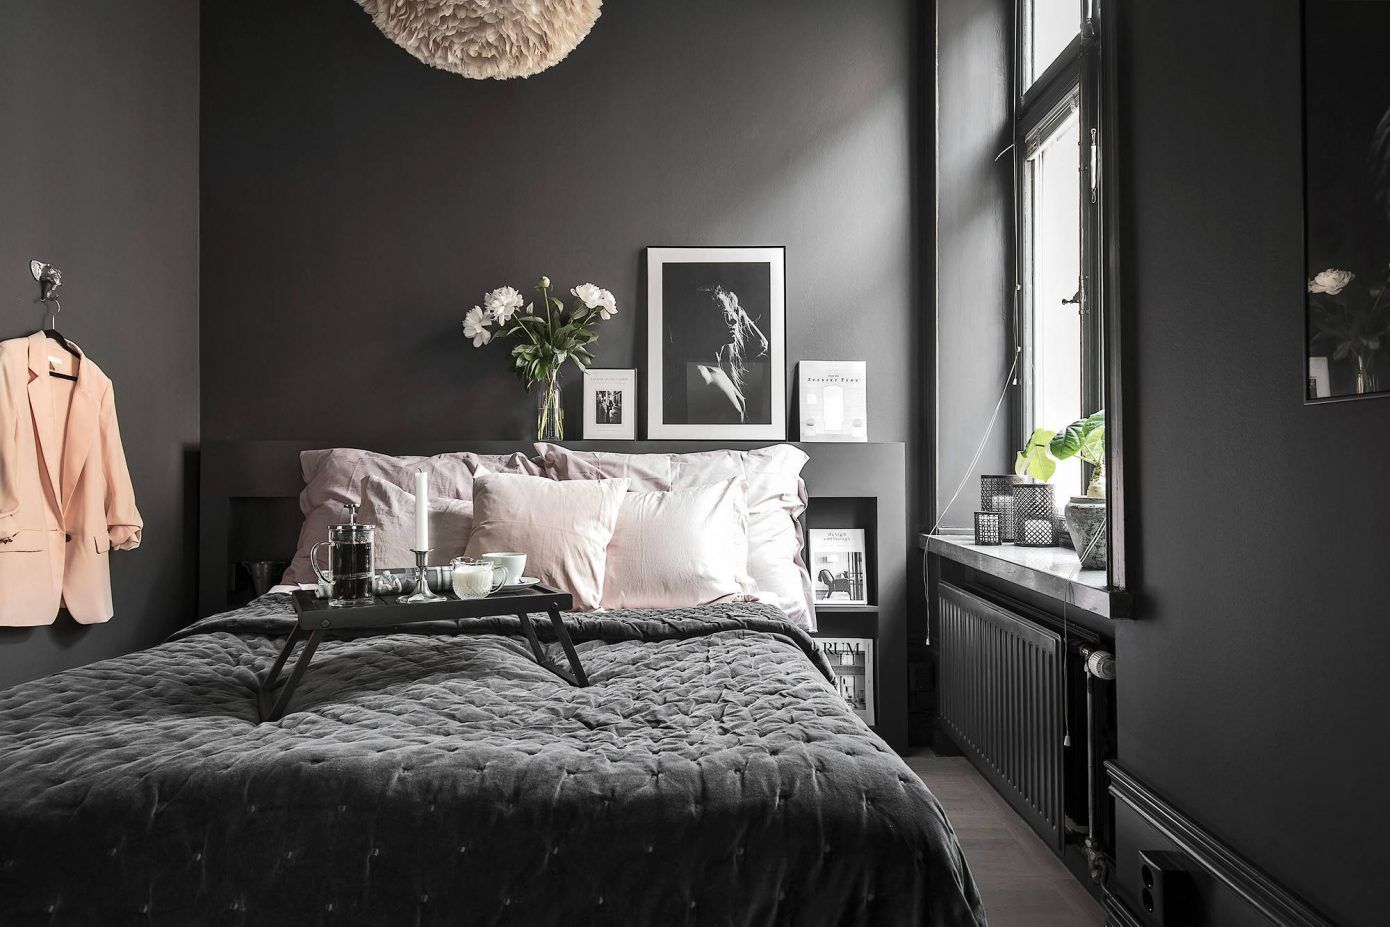 Great Grey Bedroom Decor Grey Bedroom Ideas For Small Rooms Greybedroom Do You Think He Or She Will L Grey Bedroom Decor Small Room Bedroom Bedroom Interior